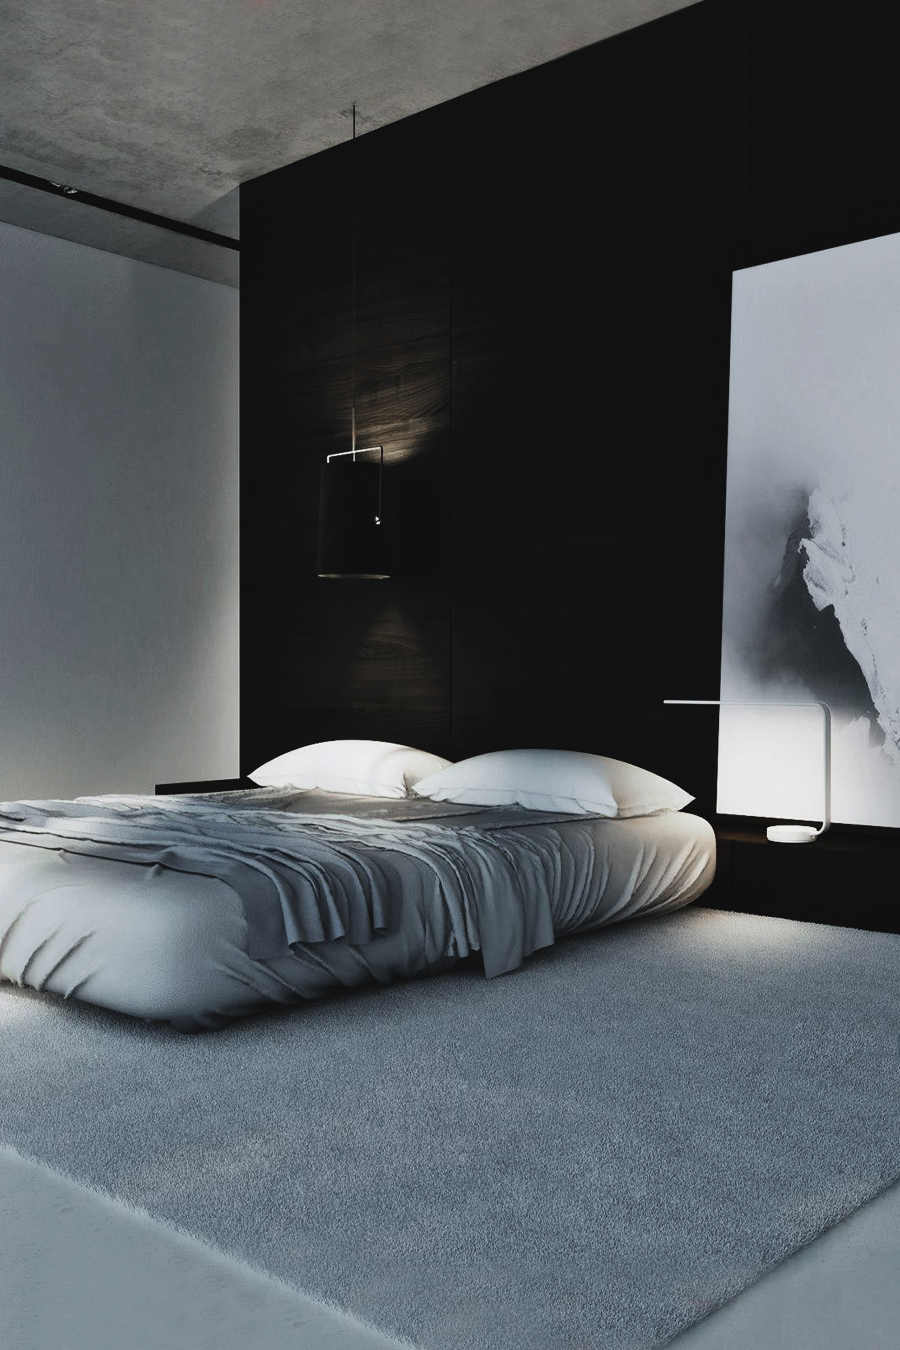 Vt home less is more visual therapy - Minimalist style homes less means more ...